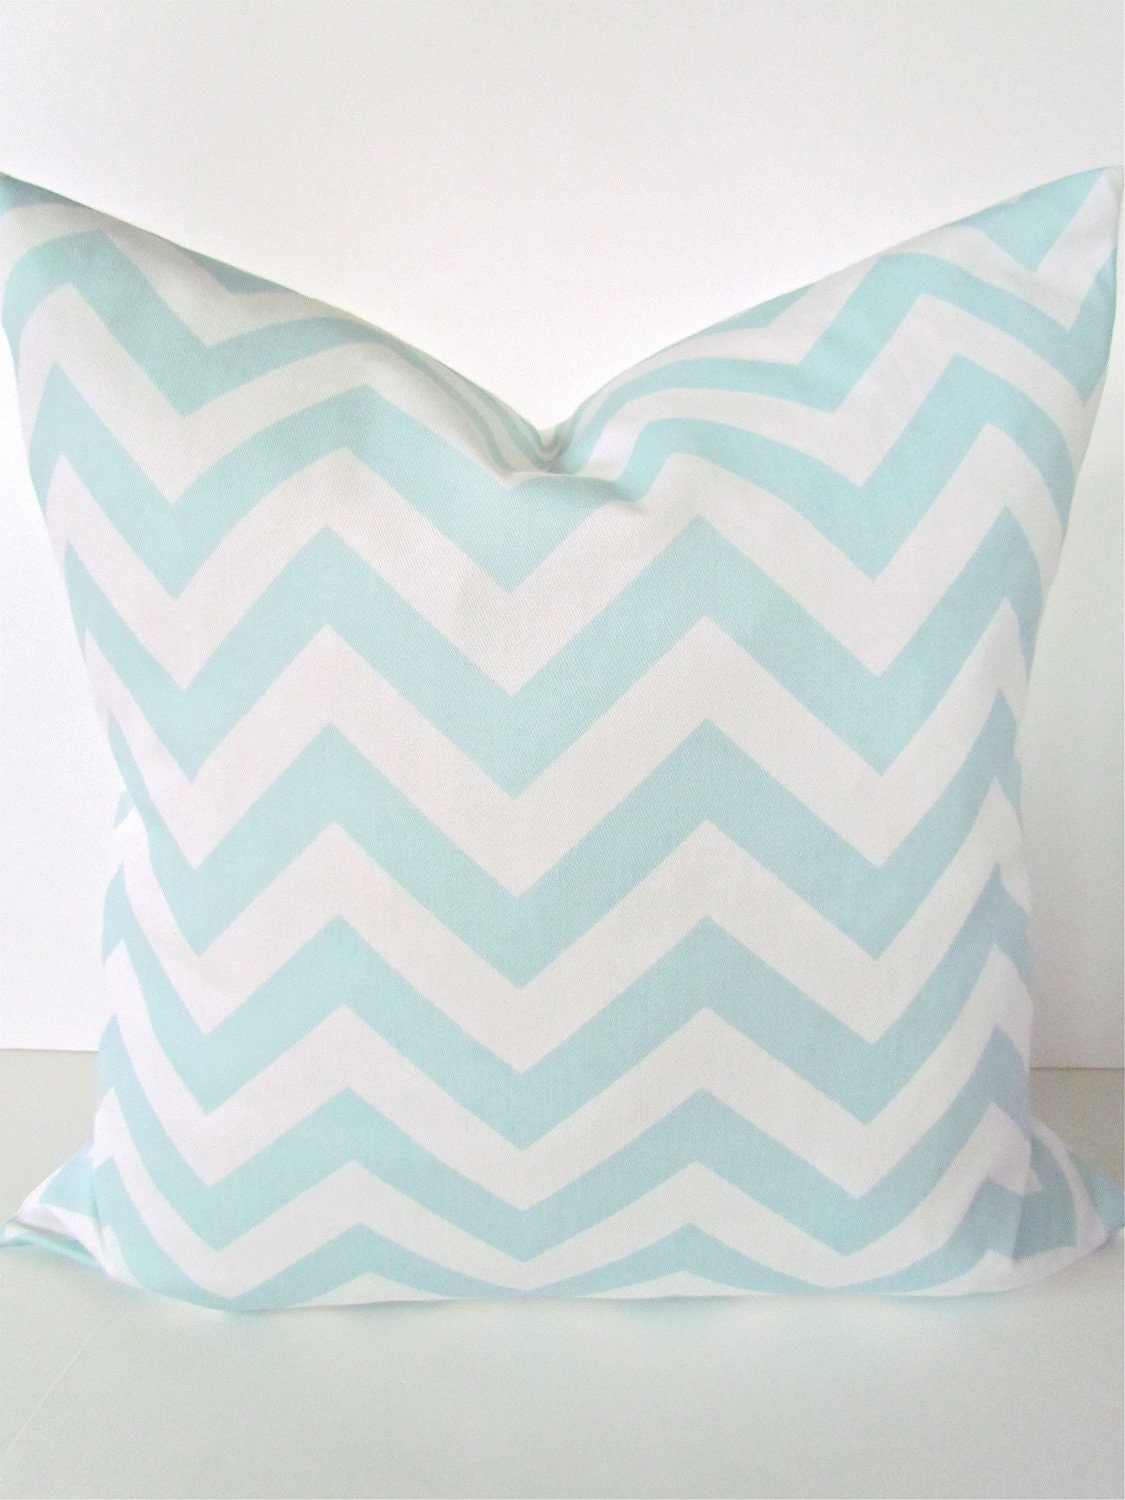 22x22 Throw Pillow Covers : Items similar to CHEVRON THROW PILLOW Covers 22x22 24x24 26x26 Decorative Throw Pillows Euro ...